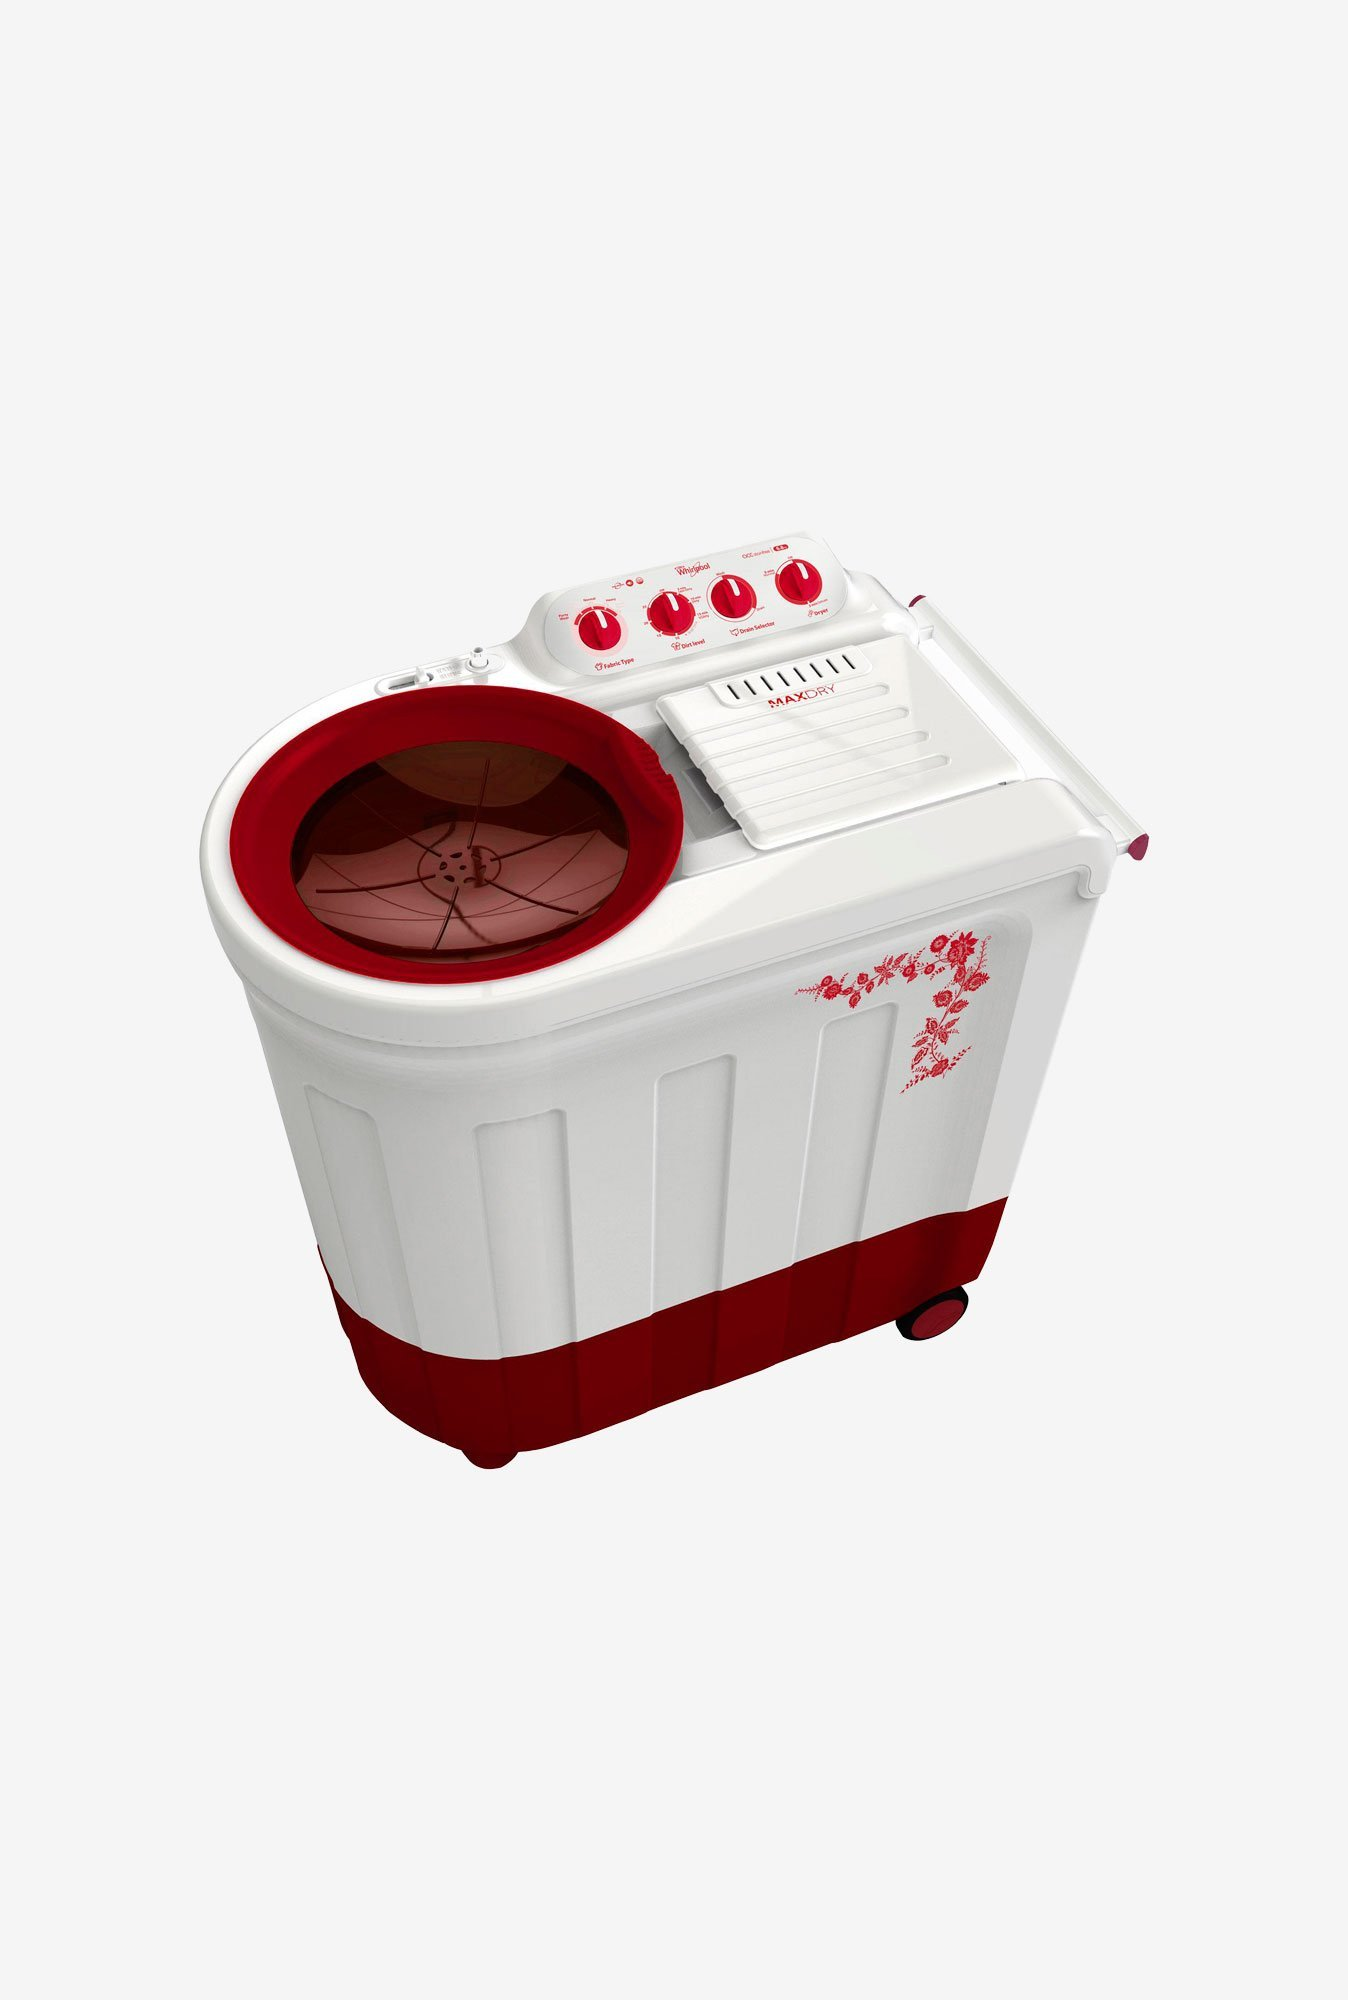 Whirlpool Ace 7.0 Stainfree Washing Machine Flora Red